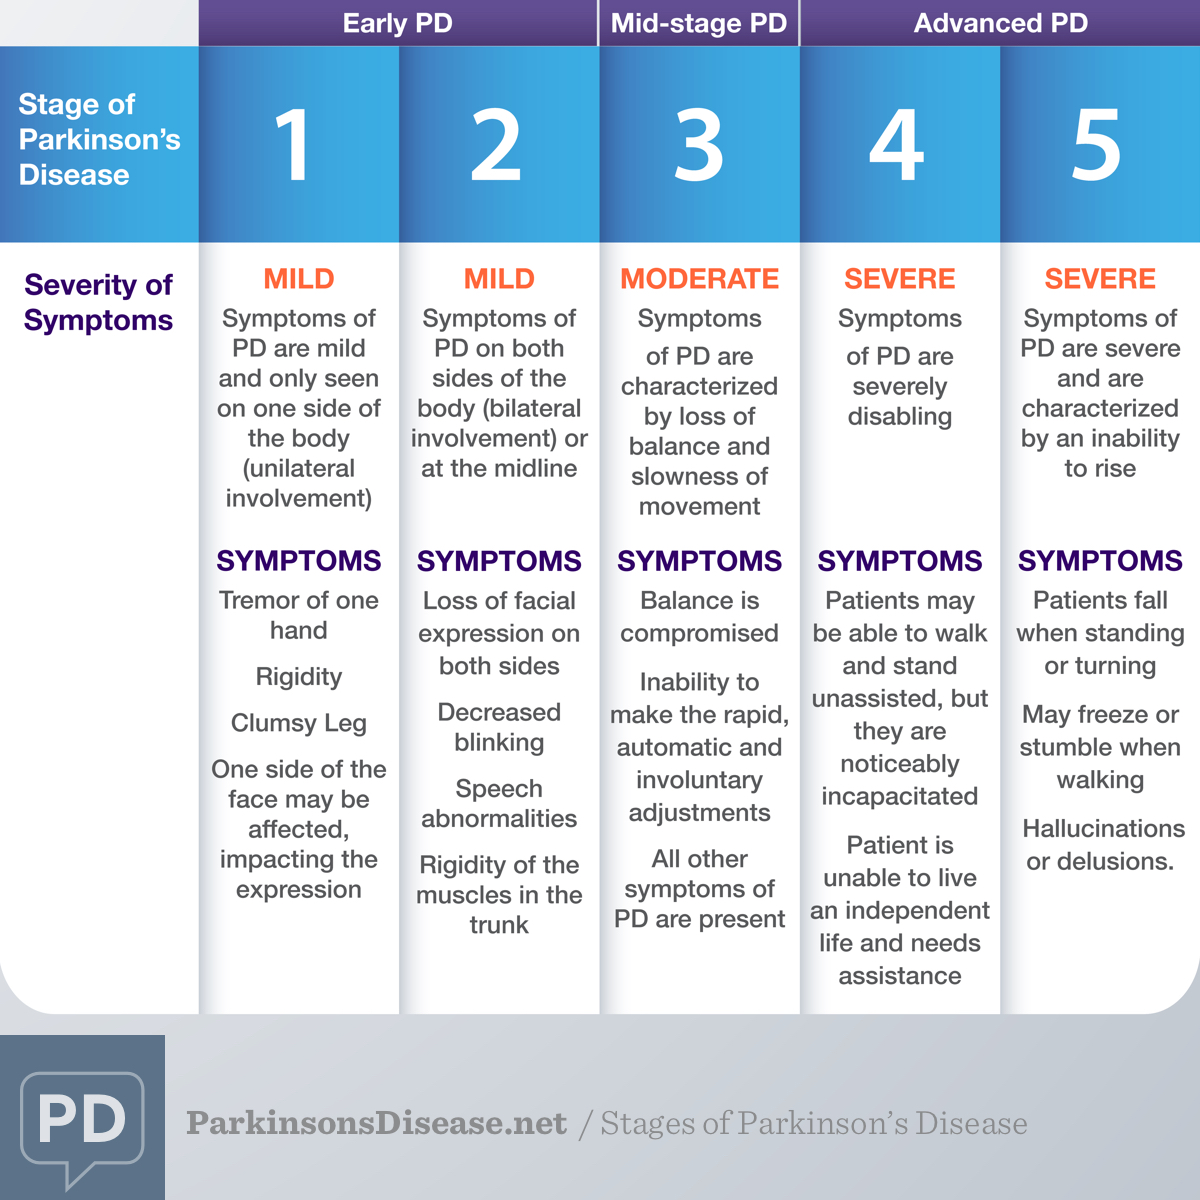 What Are the Stages of Parkinson's Disease?